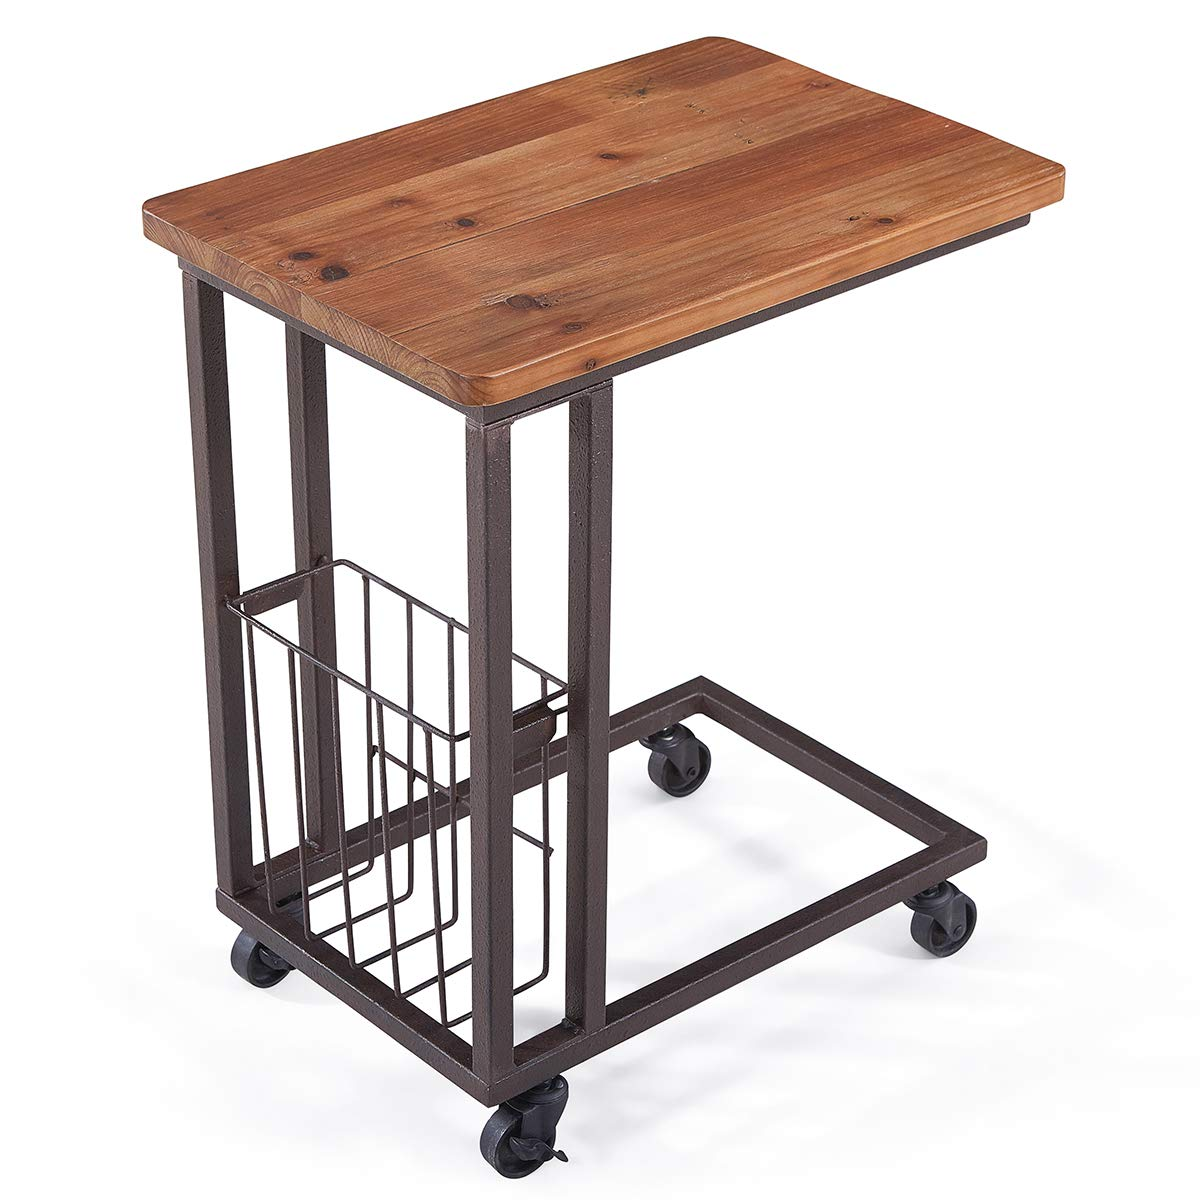 Care Royal Vintage Mobile Snack End Side C Table with Storage Basket for Coffee Laptop Tablet, Slide under Sofa Couch Bed, Rolling Casters with Brakes, Natural Solid Reclaimed Wood, Rustic Brown Metal by Care Royal